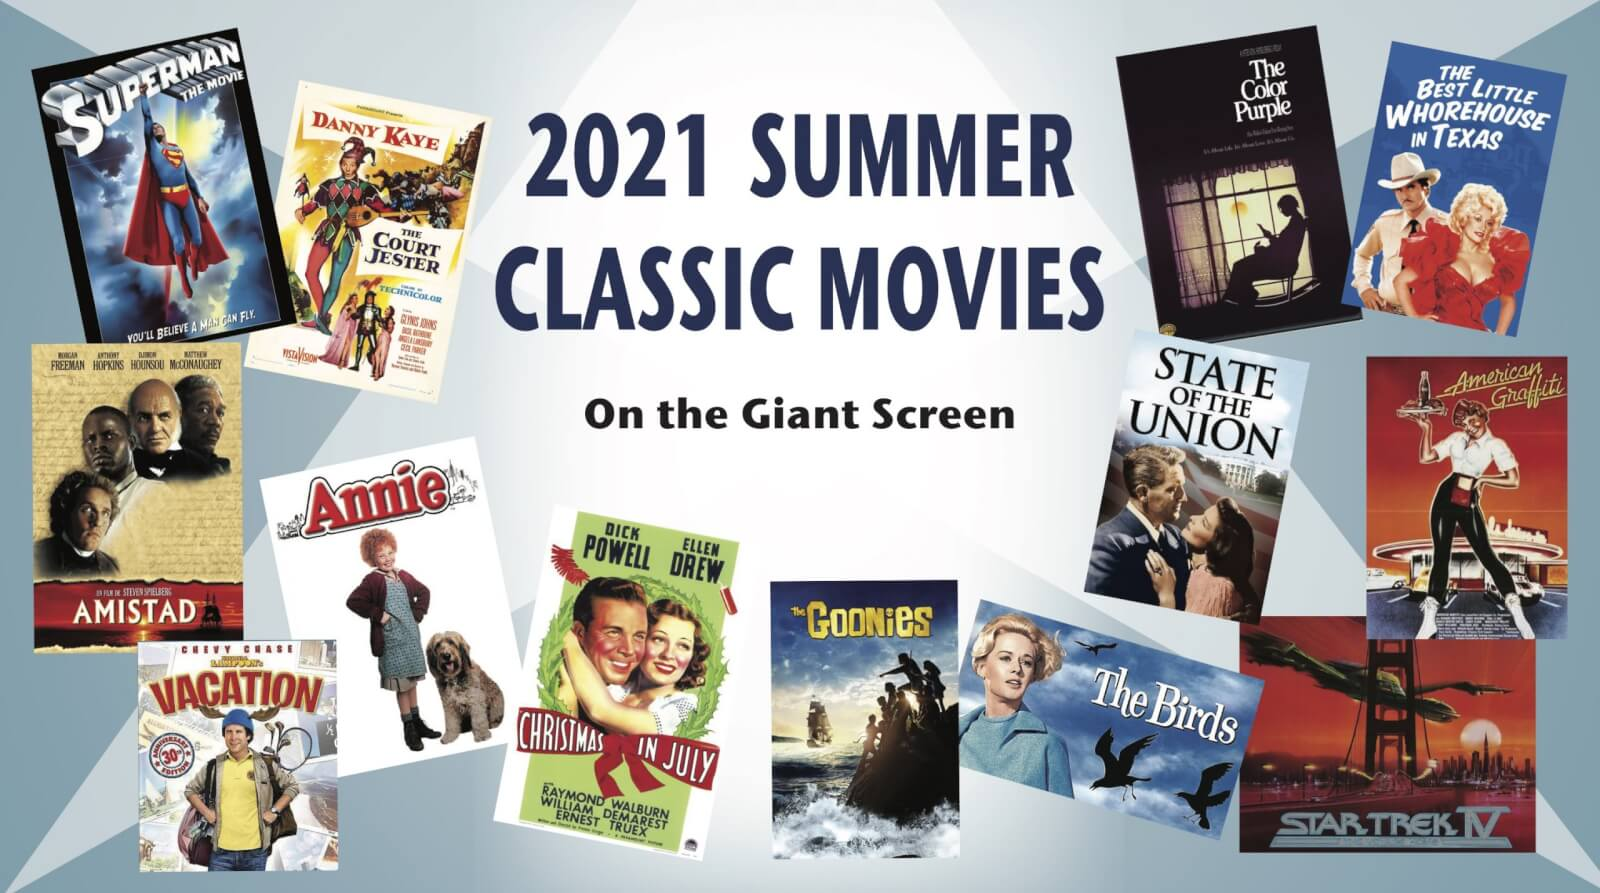 Image showing film posters of featured summer classic movies at the Majestic Theater